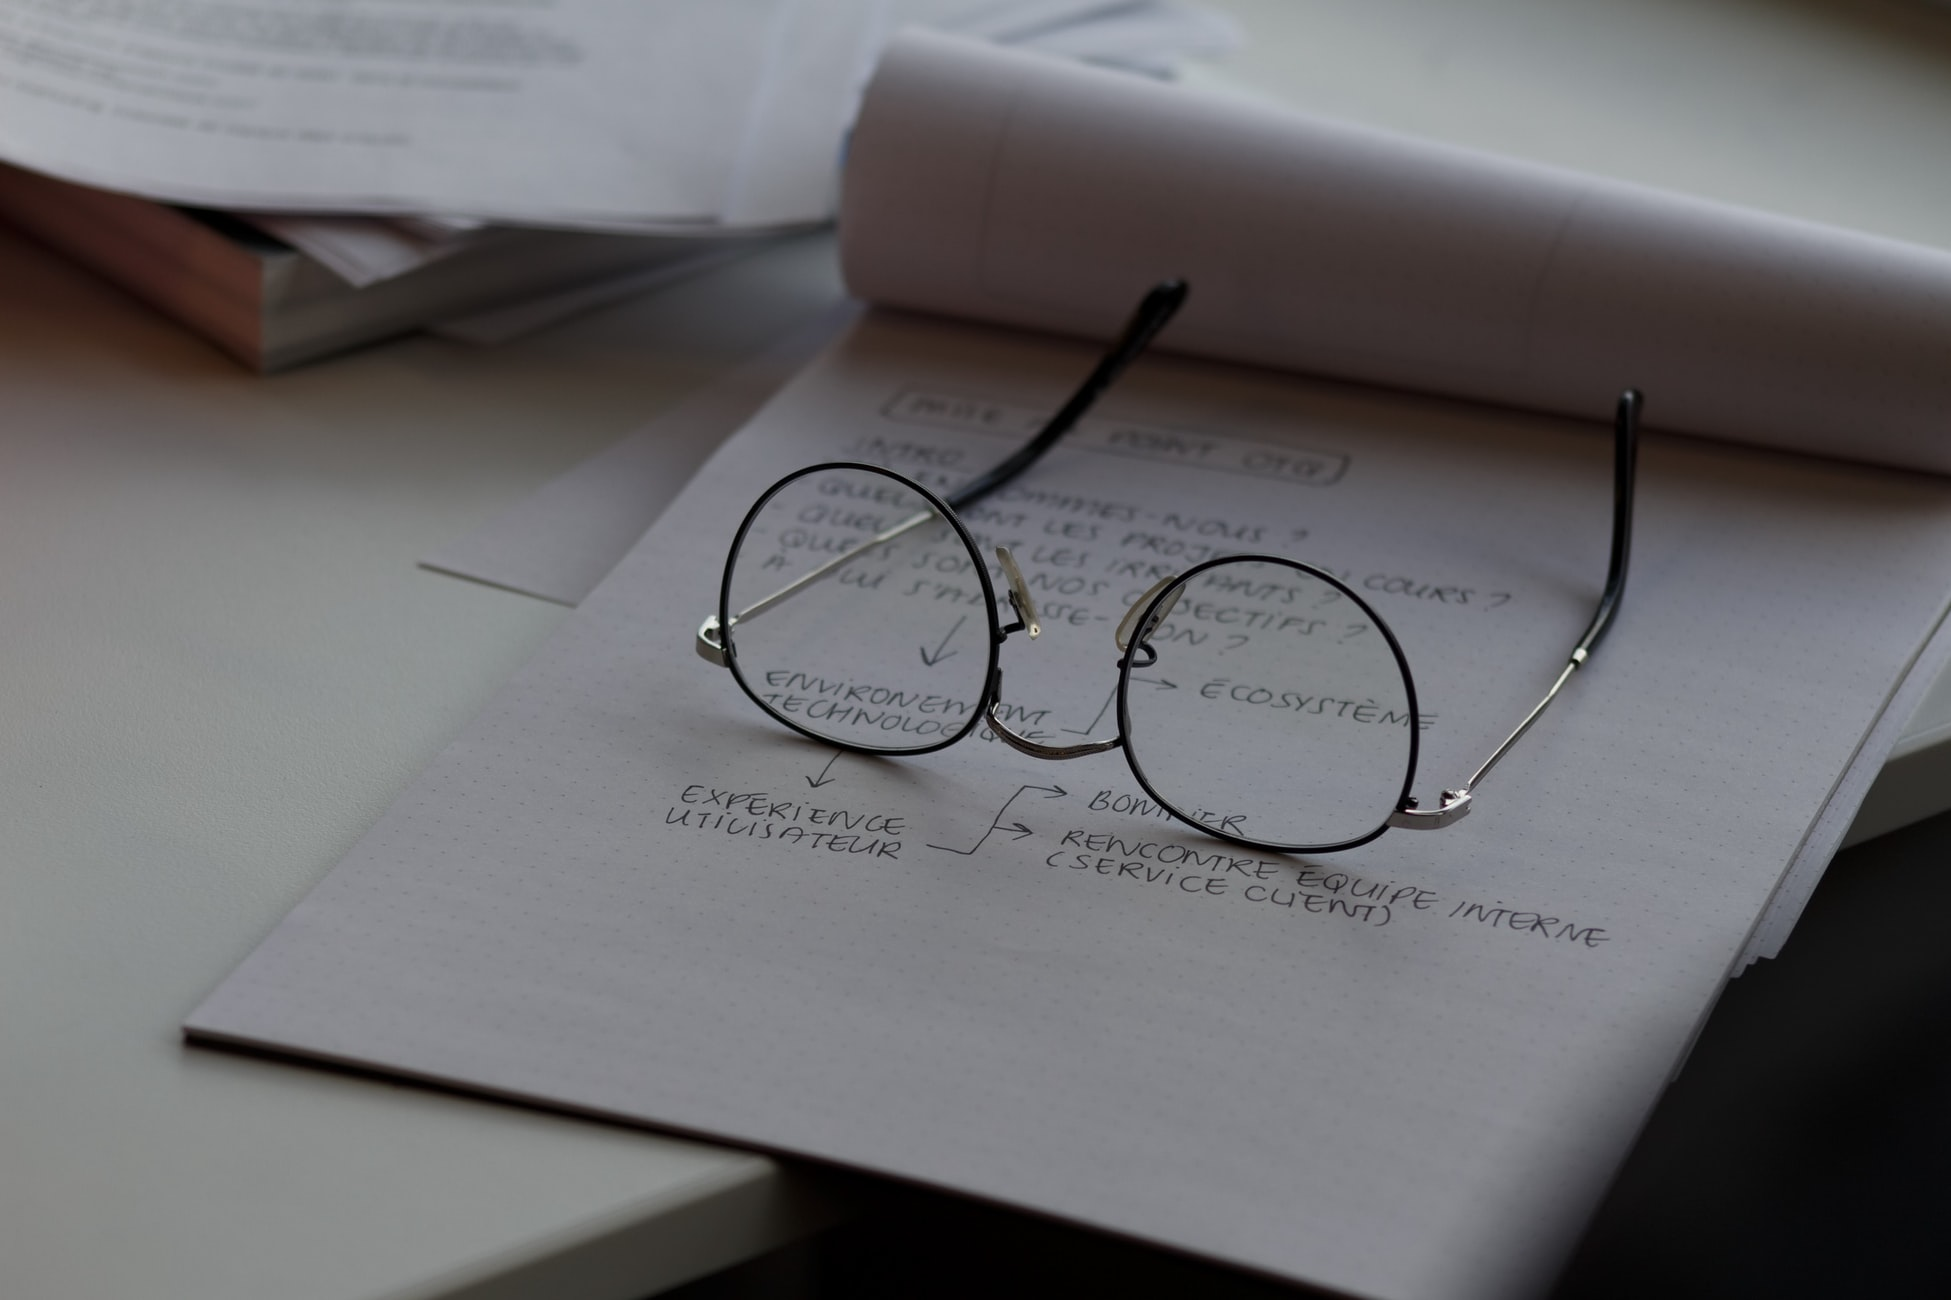 notepad on desk with glasses on top